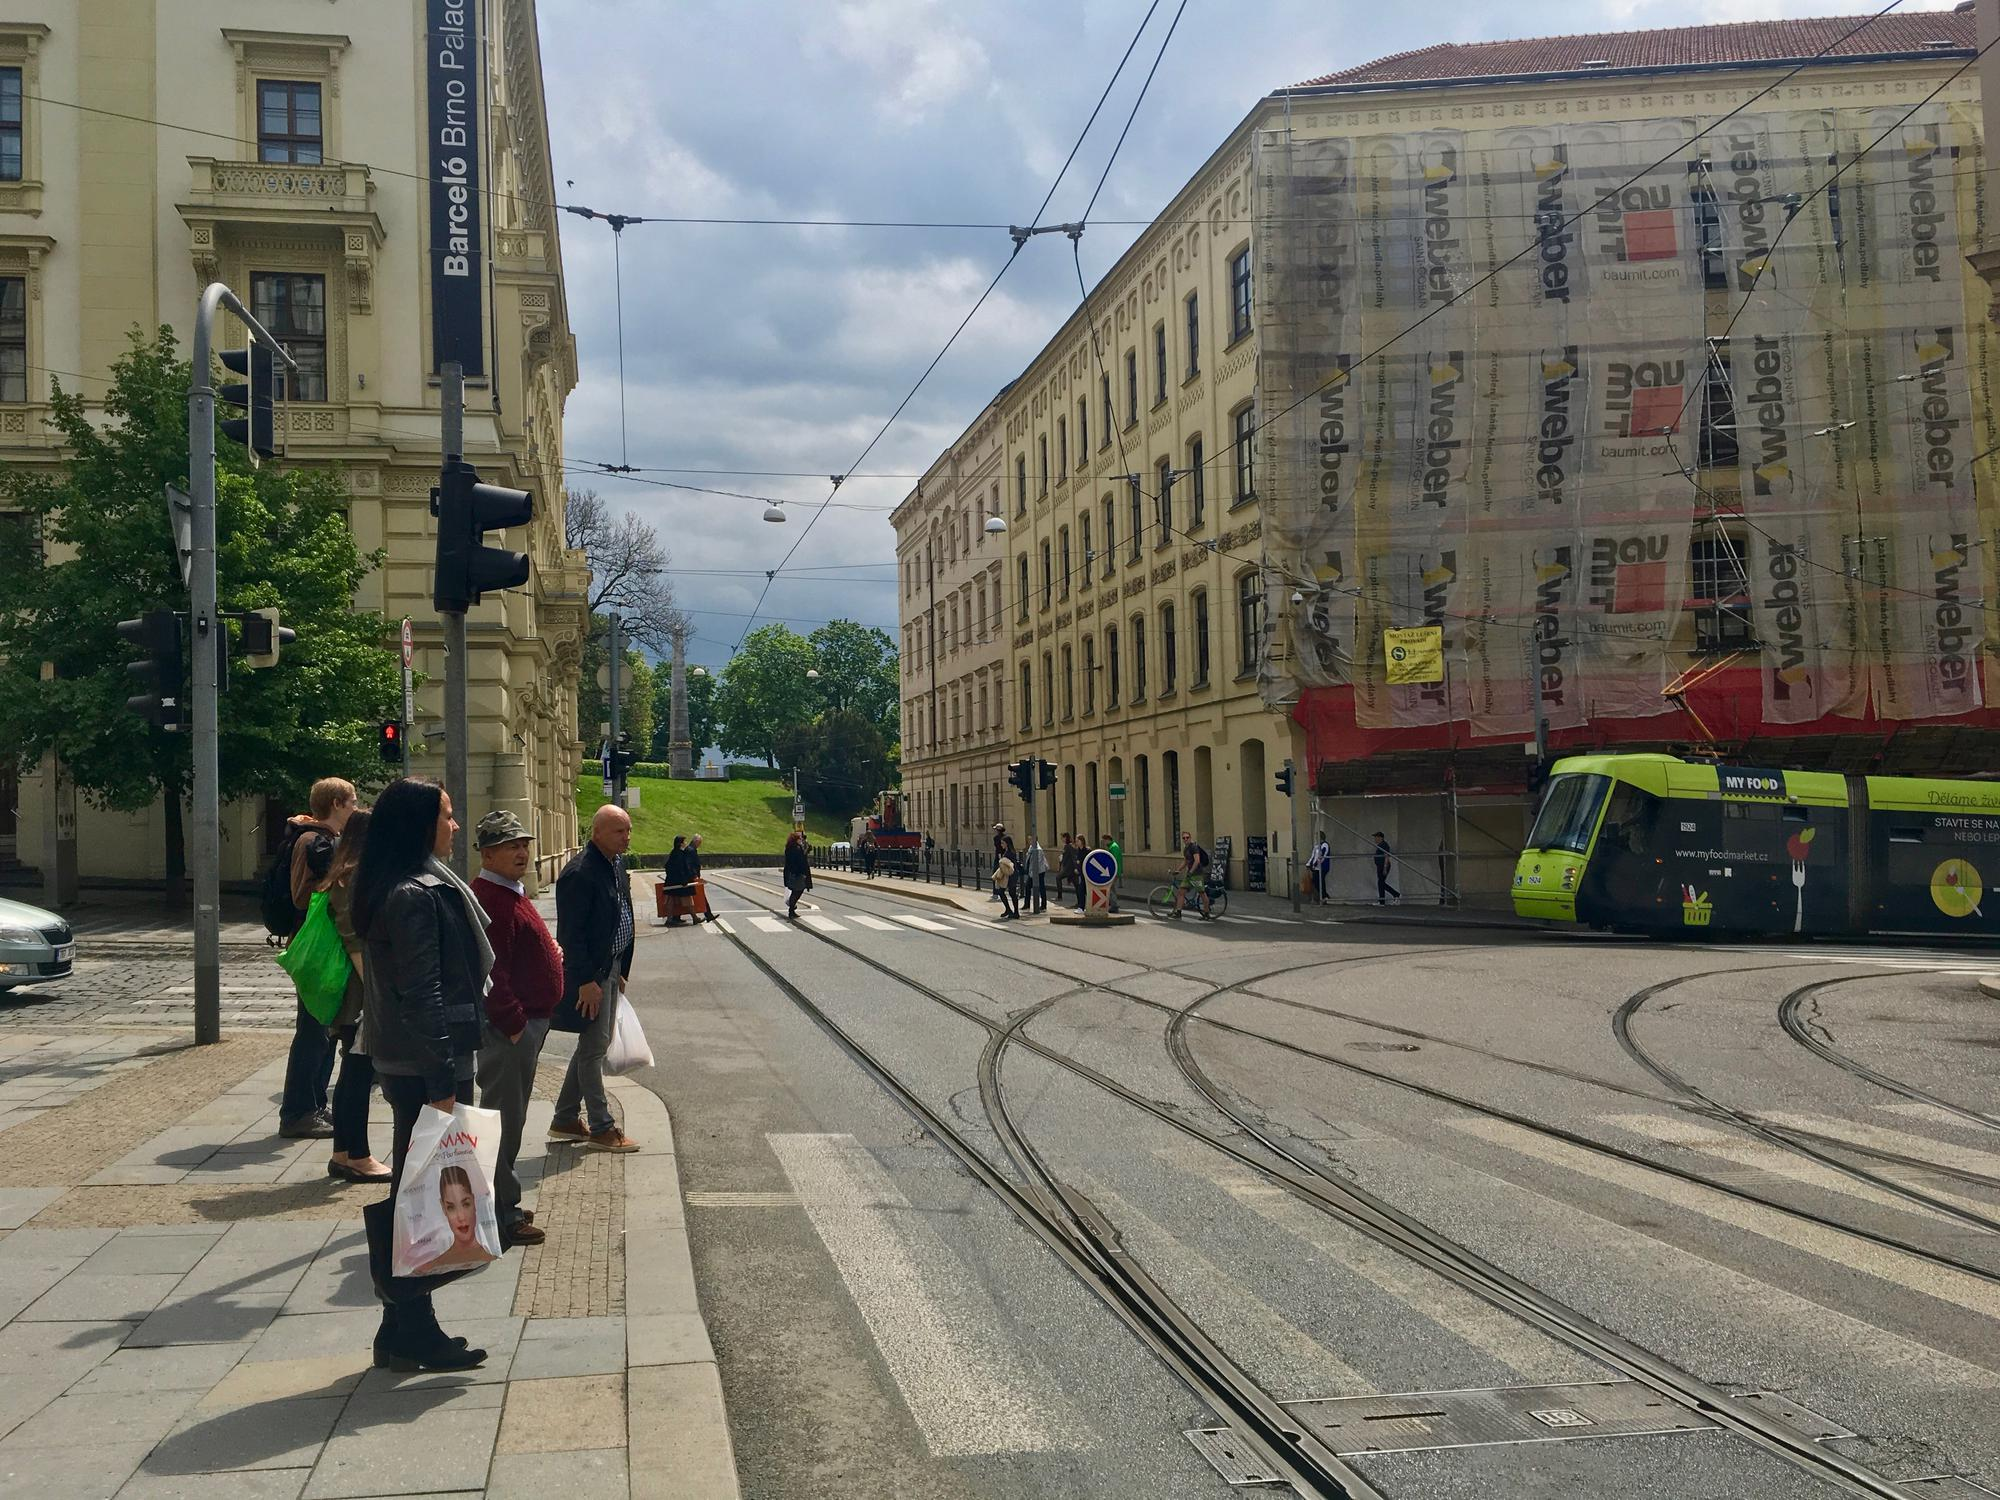 🇨🇿 Brno, Czech Republic, may 2017.